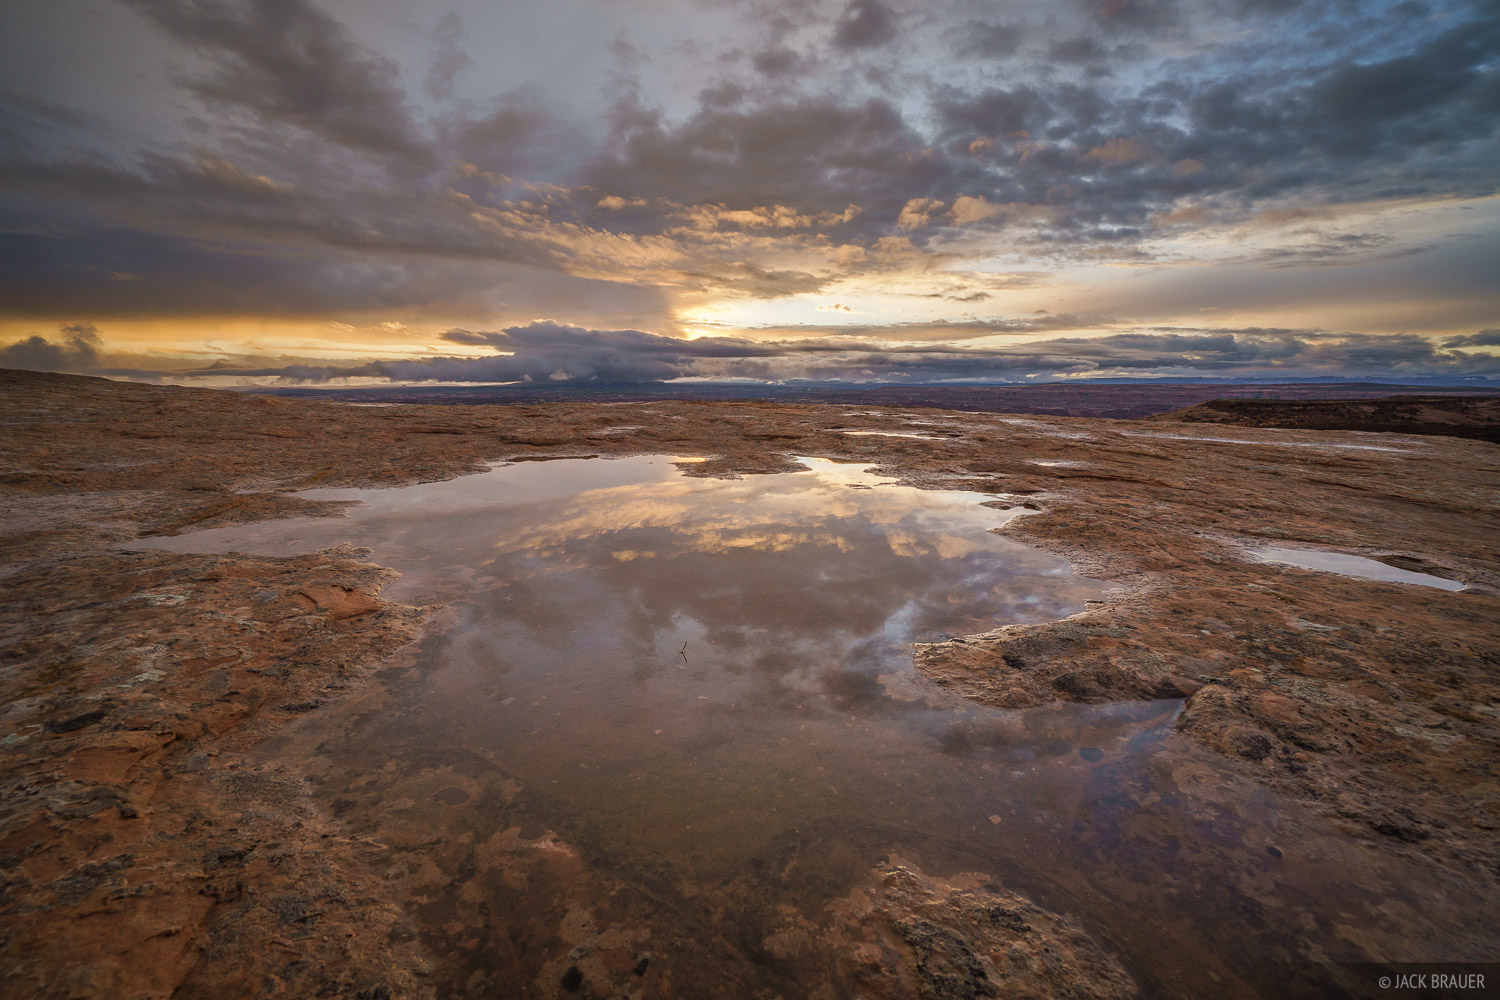 Sunrise reflection in a slickrock pothole after a rainy night in the desert.